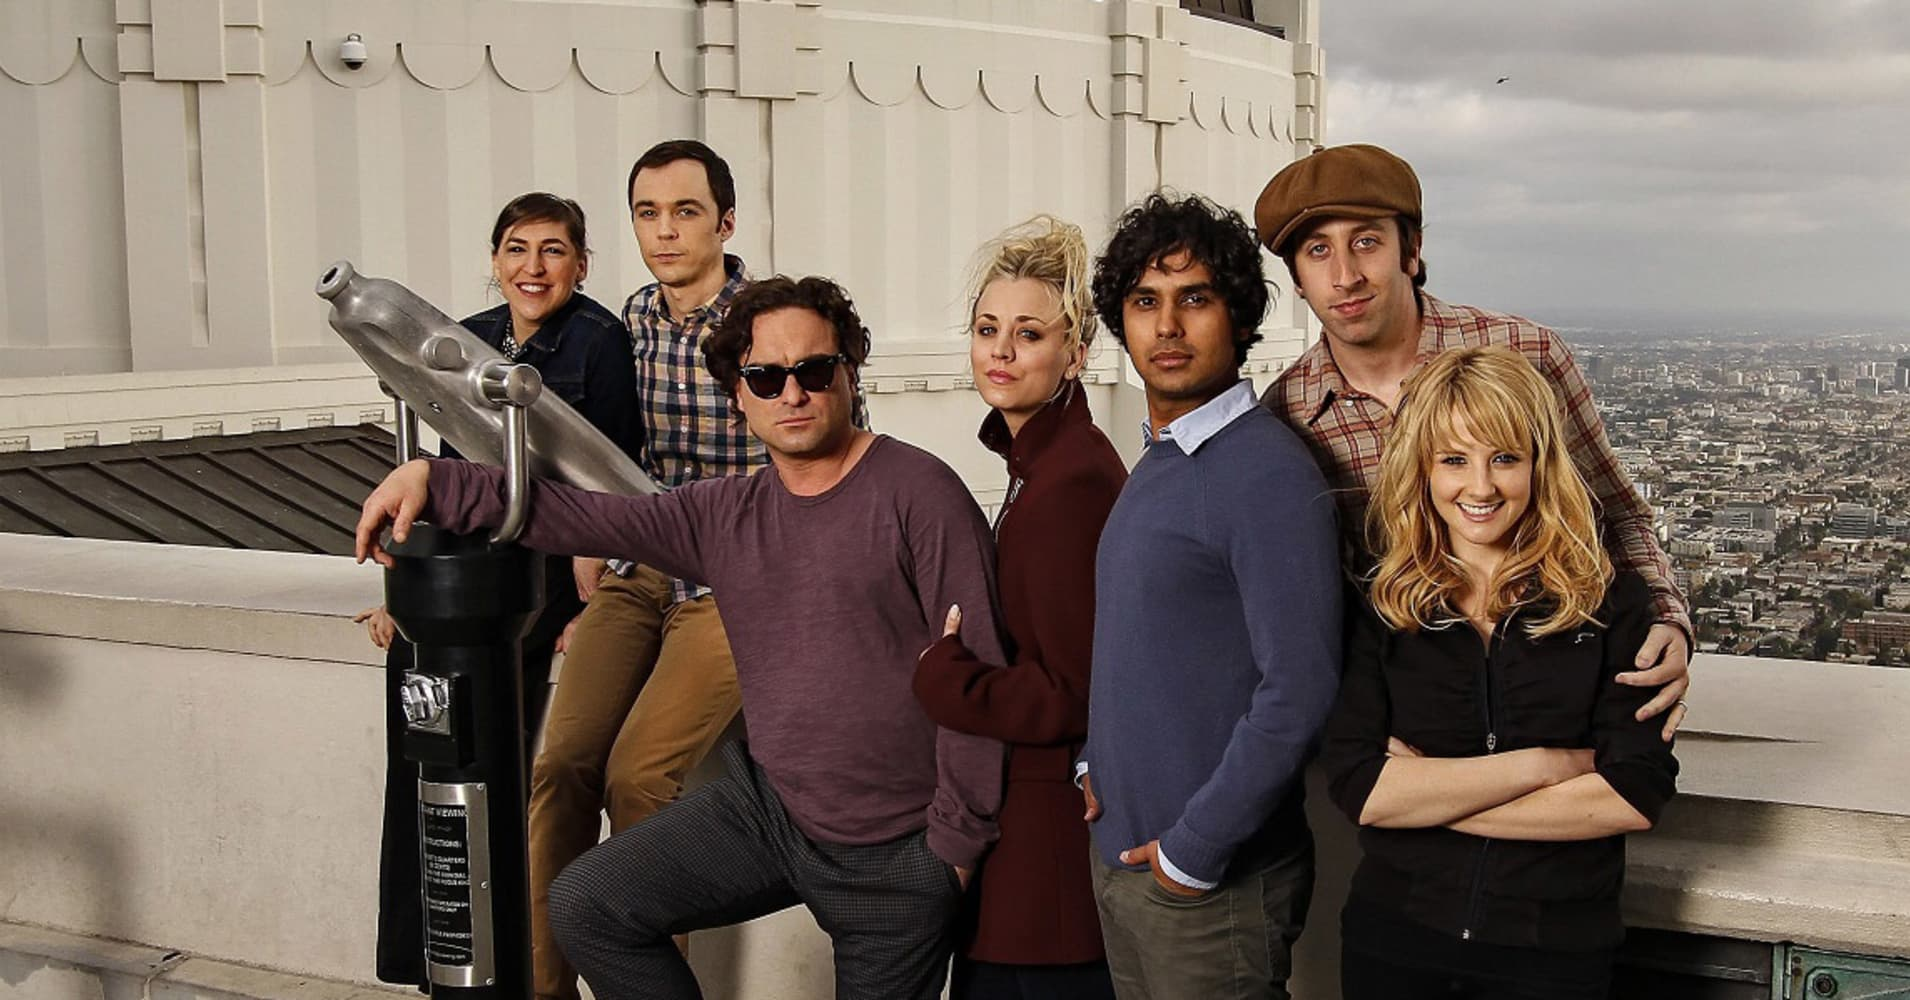 CBS TV comedy series The Big Bang Theory's cast - Lt to Rt: Mayim Bialik, Jim Parsons, Johnny Galecki, Kaley Cuoco, Kunal Nayyar, Simon Helberg and Melissa Rauch, at Griffith Observatory.